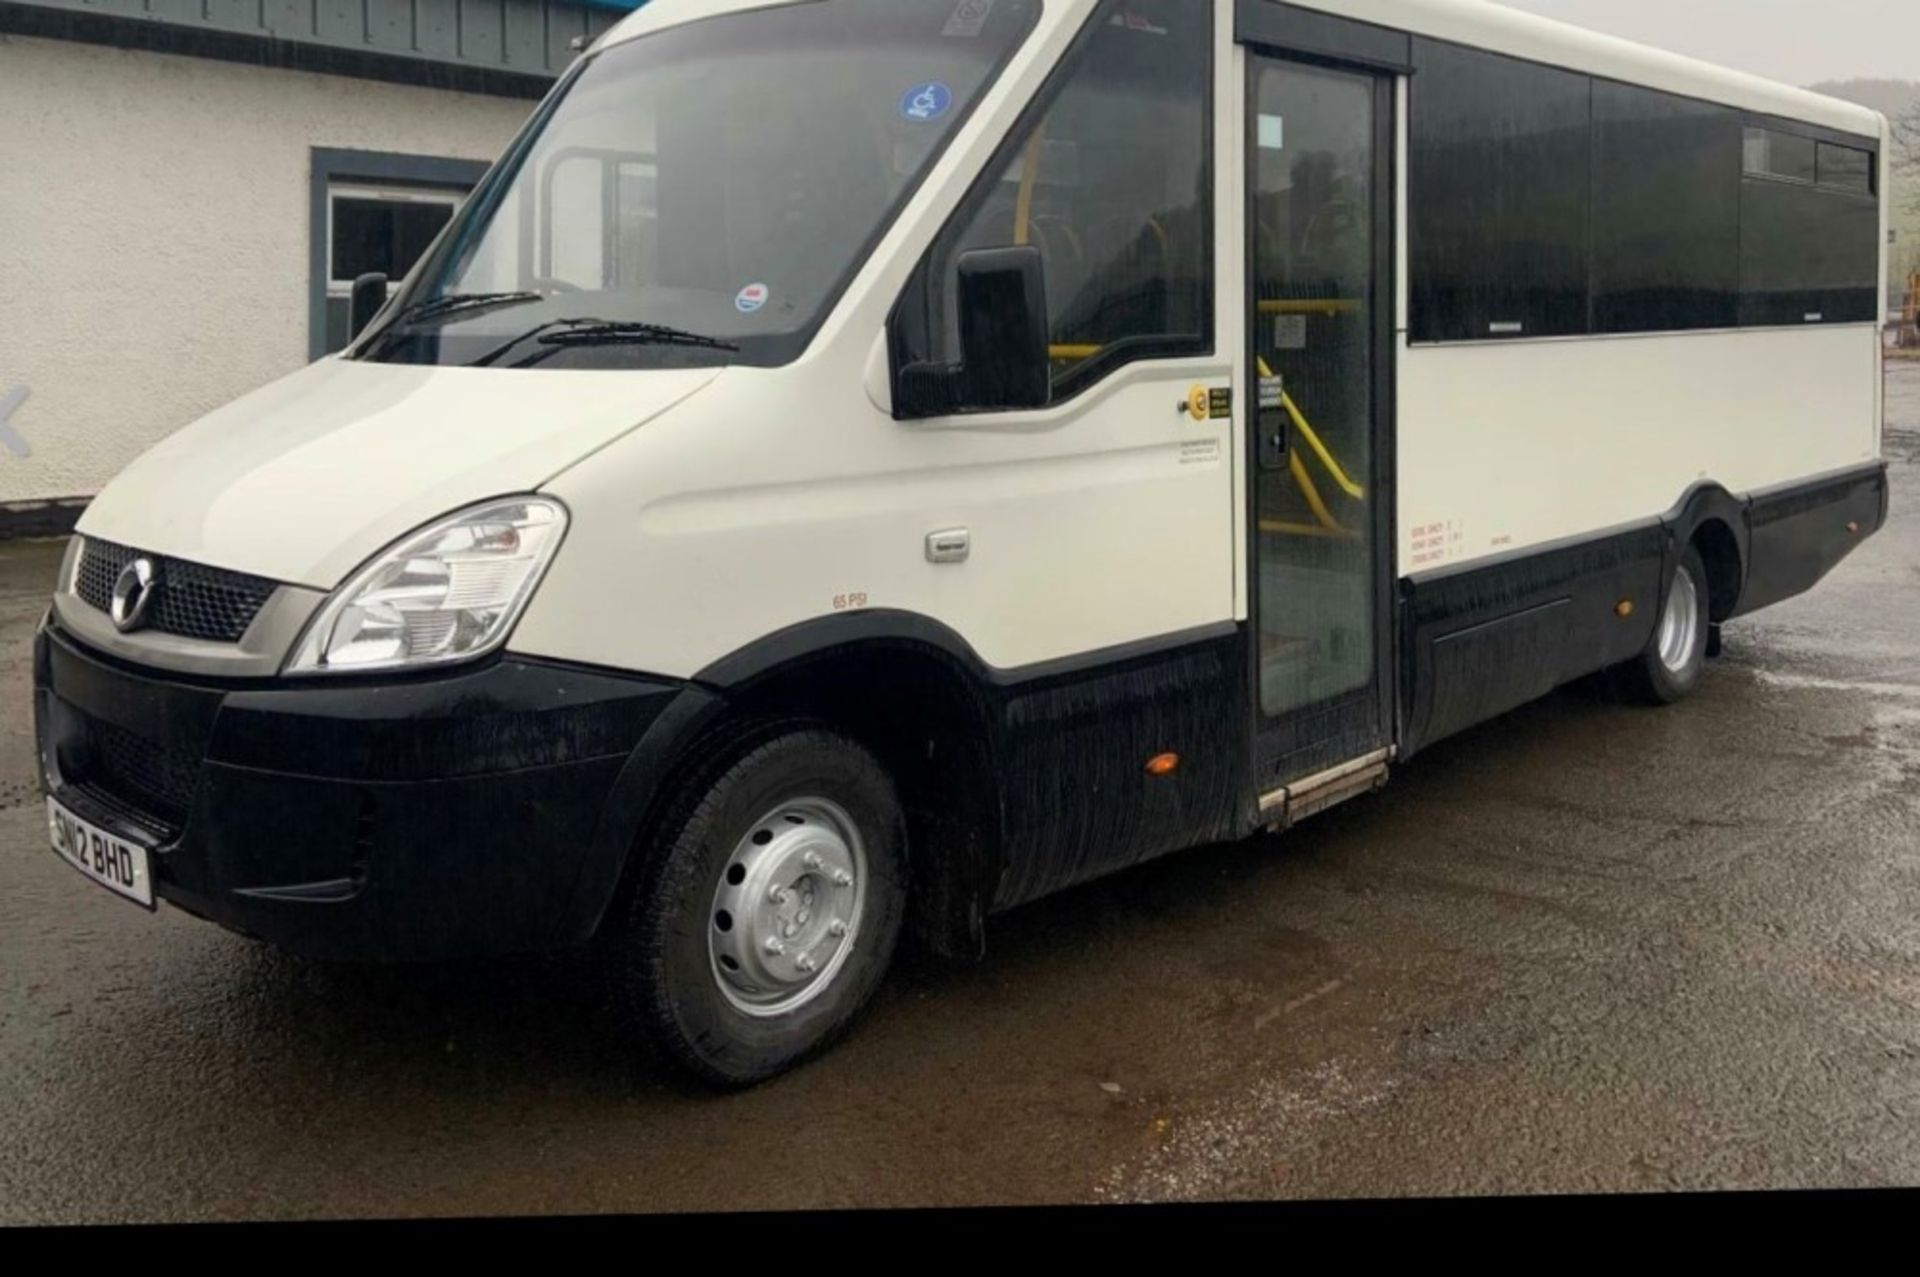 12 reg IRIS DAILY 65C17 MELLOR 11 SEAT BUS (LOCATION DUMFRIES) 1ST REG 05/12, 131454KM [+ VAT] - Image 2 of 6